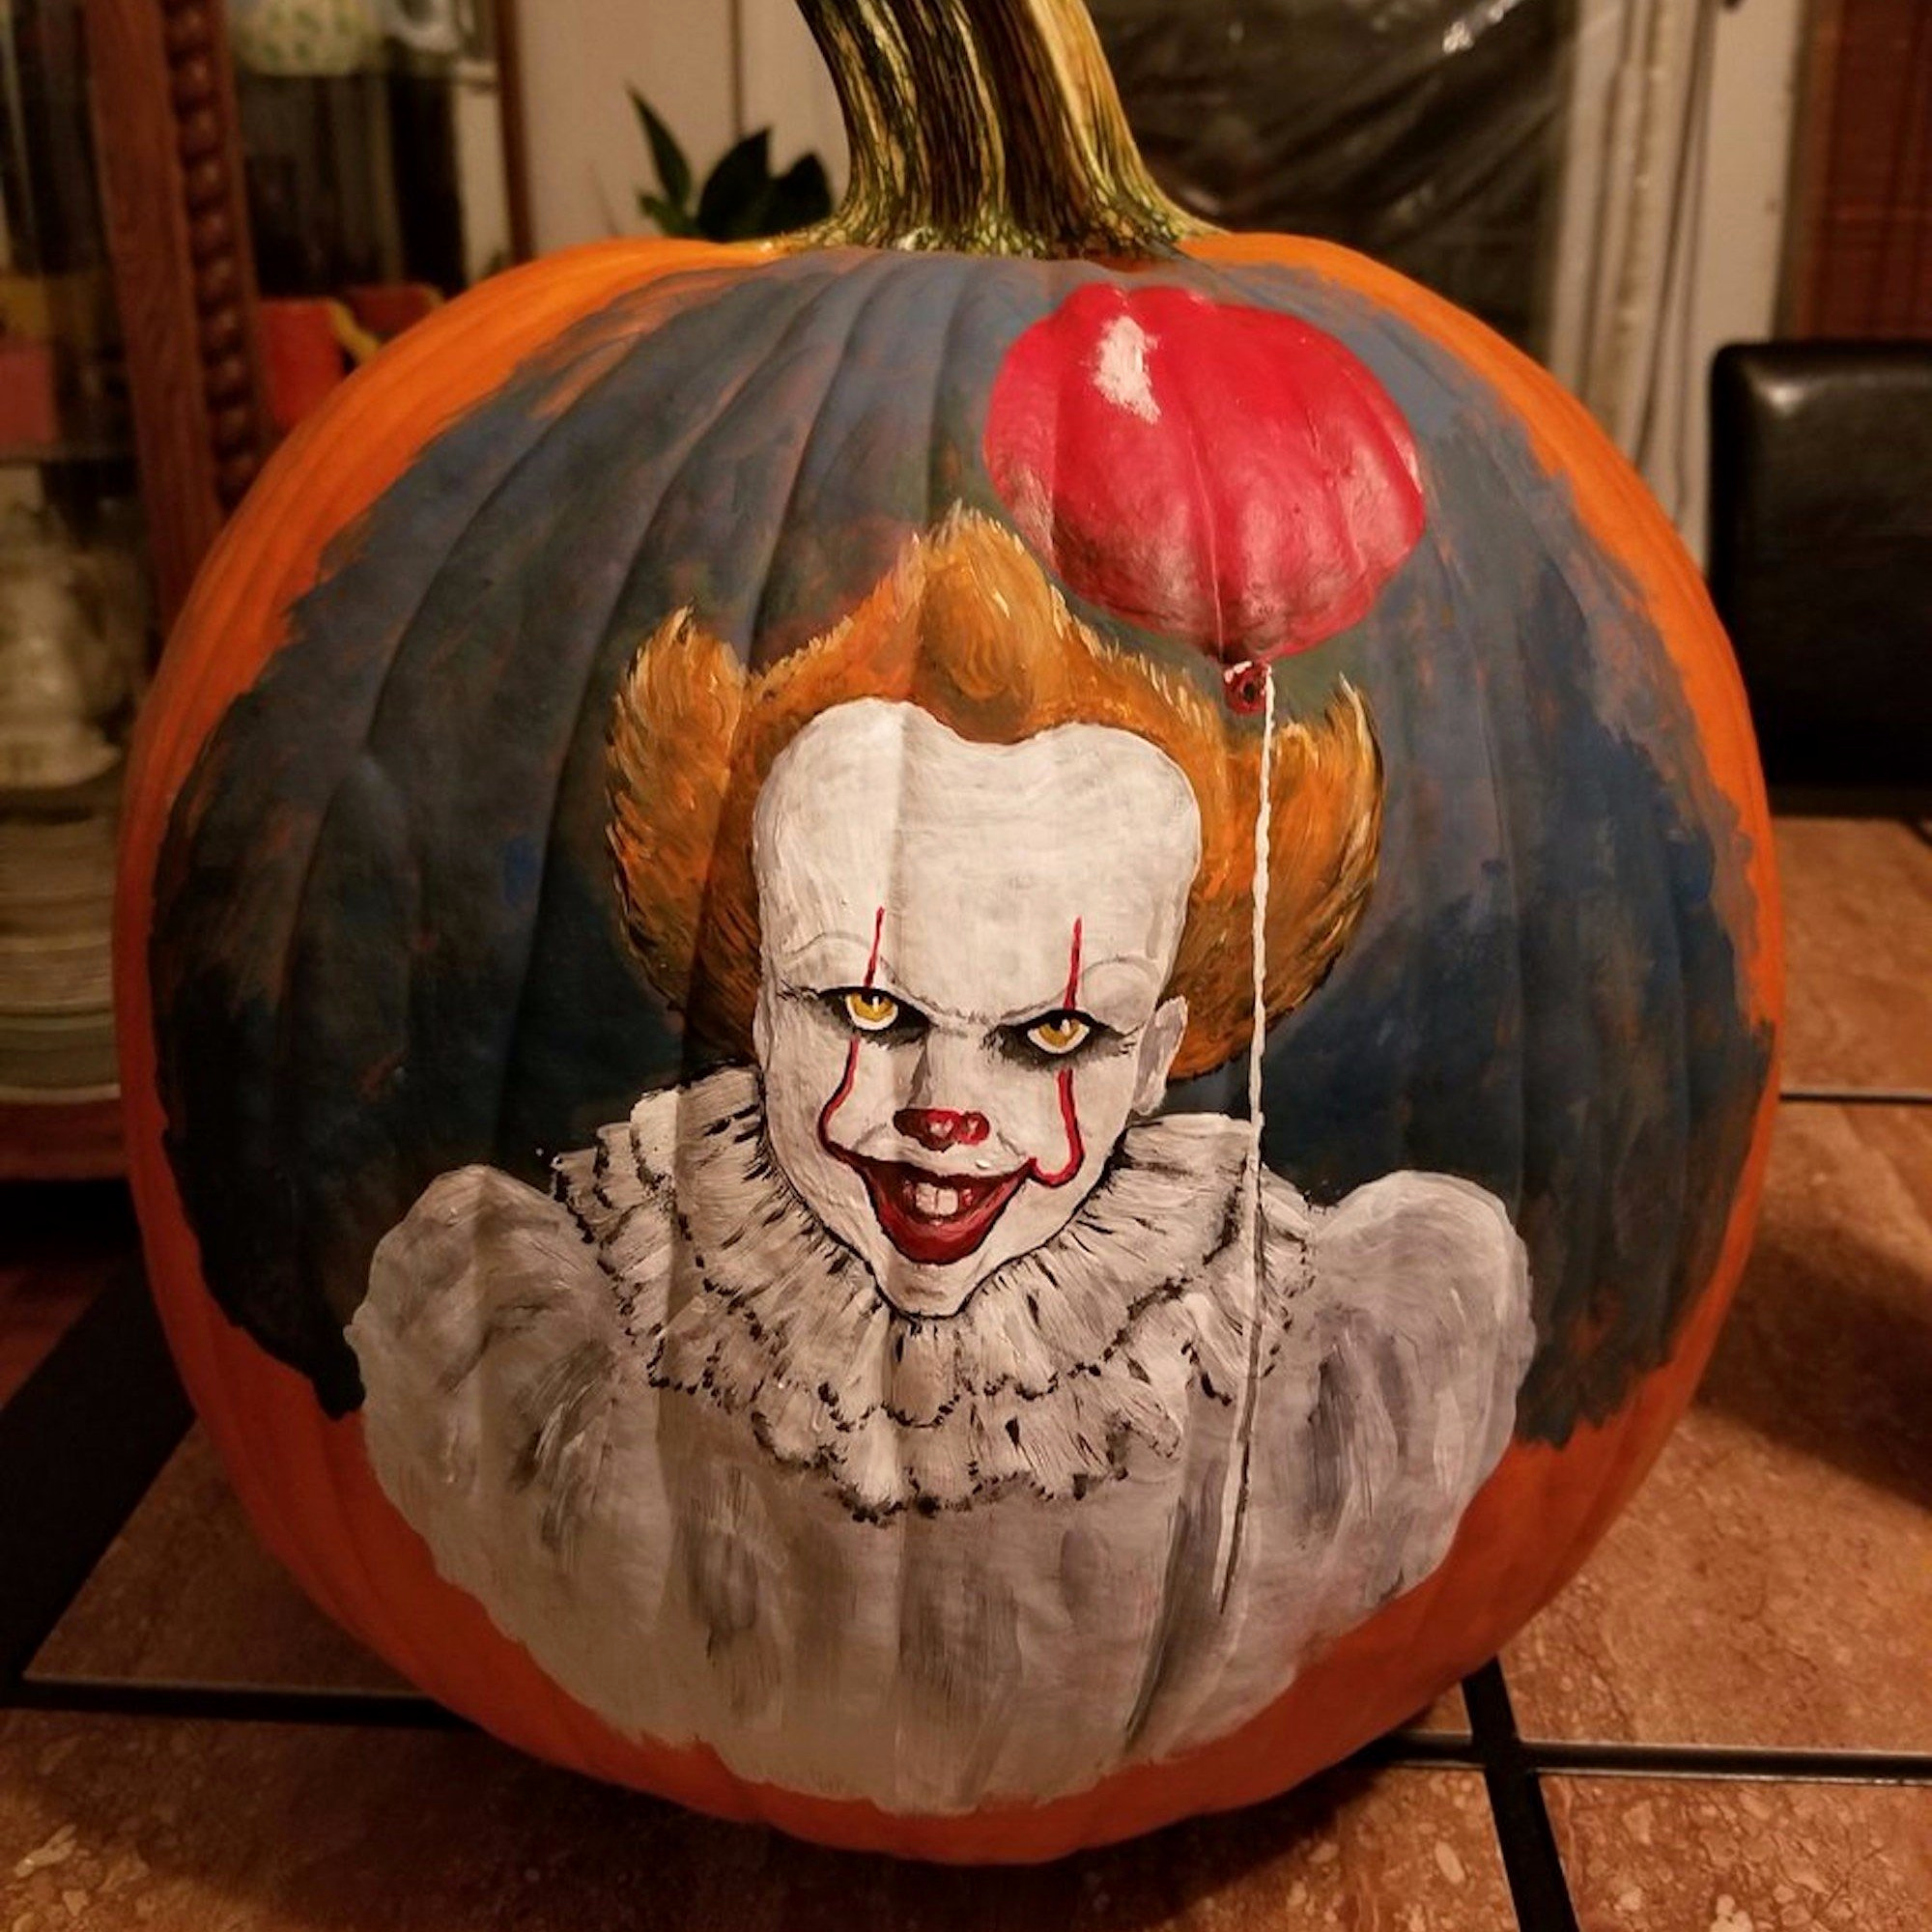 Pennywise calabaza 🎃👻🕷️